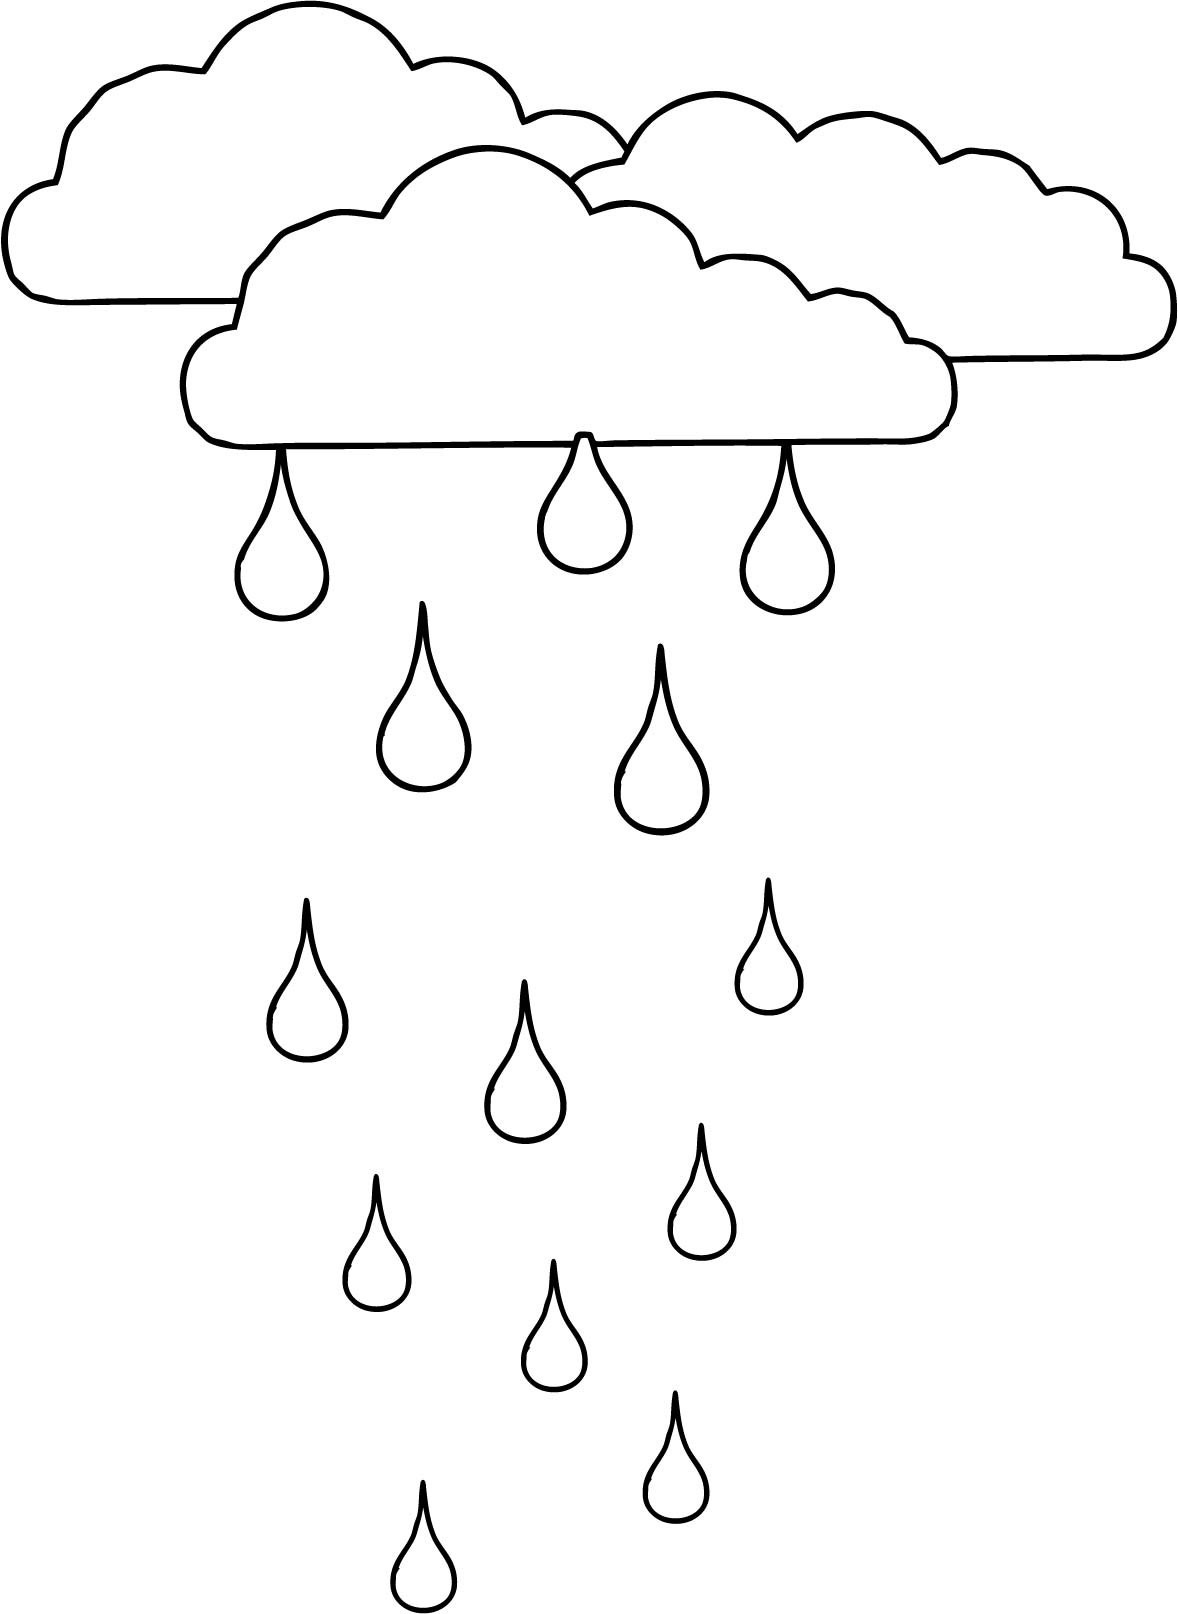 Raindrops Coloring Pages Gallery